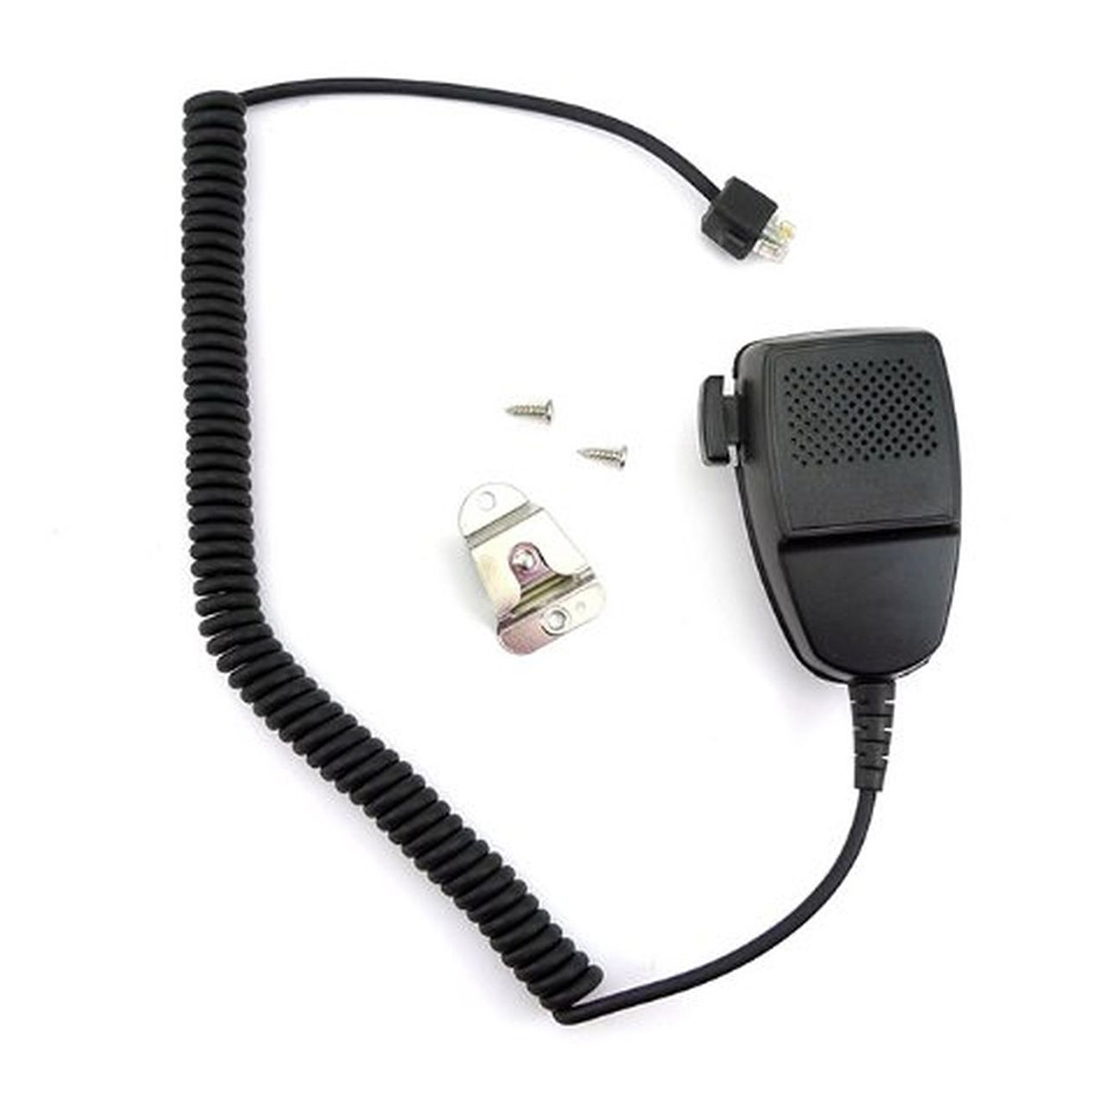 New 8-pin Speaker Microphone For Motorola Intercom Radio Car Mobile Radio GM300 GM338 GM950 HMN3596A